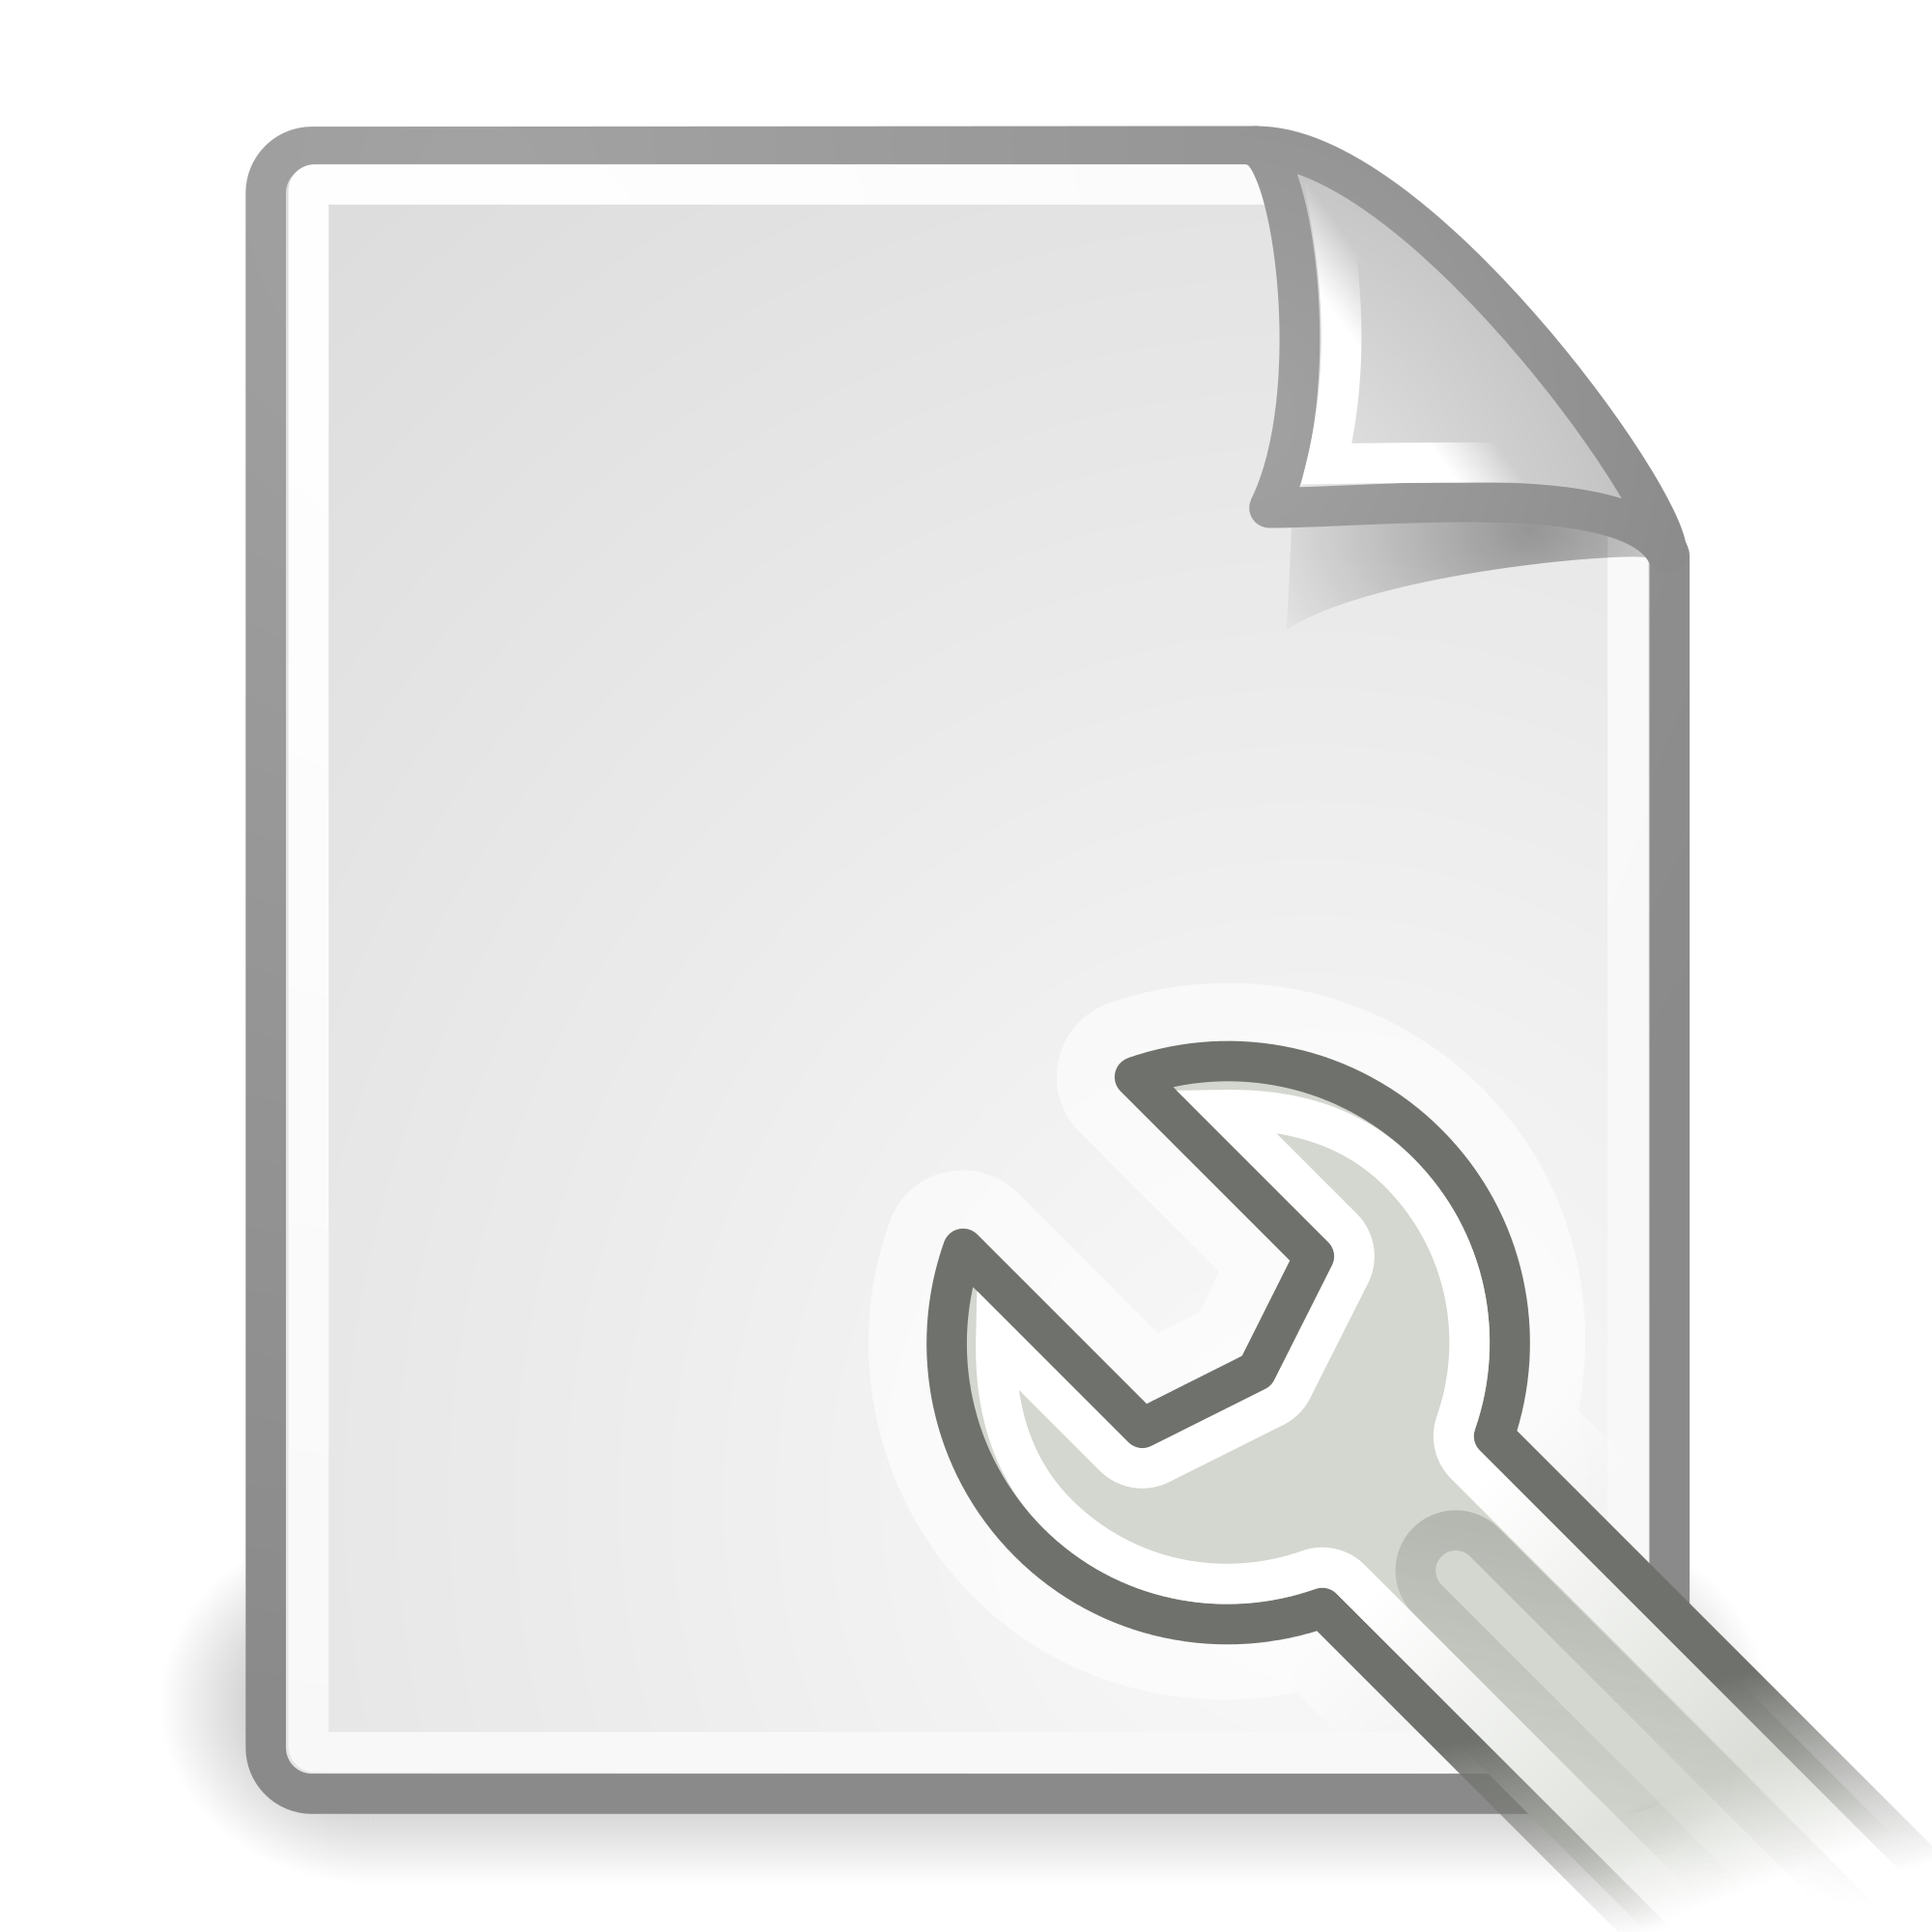 Svg properties png. File gnome document wikimedia